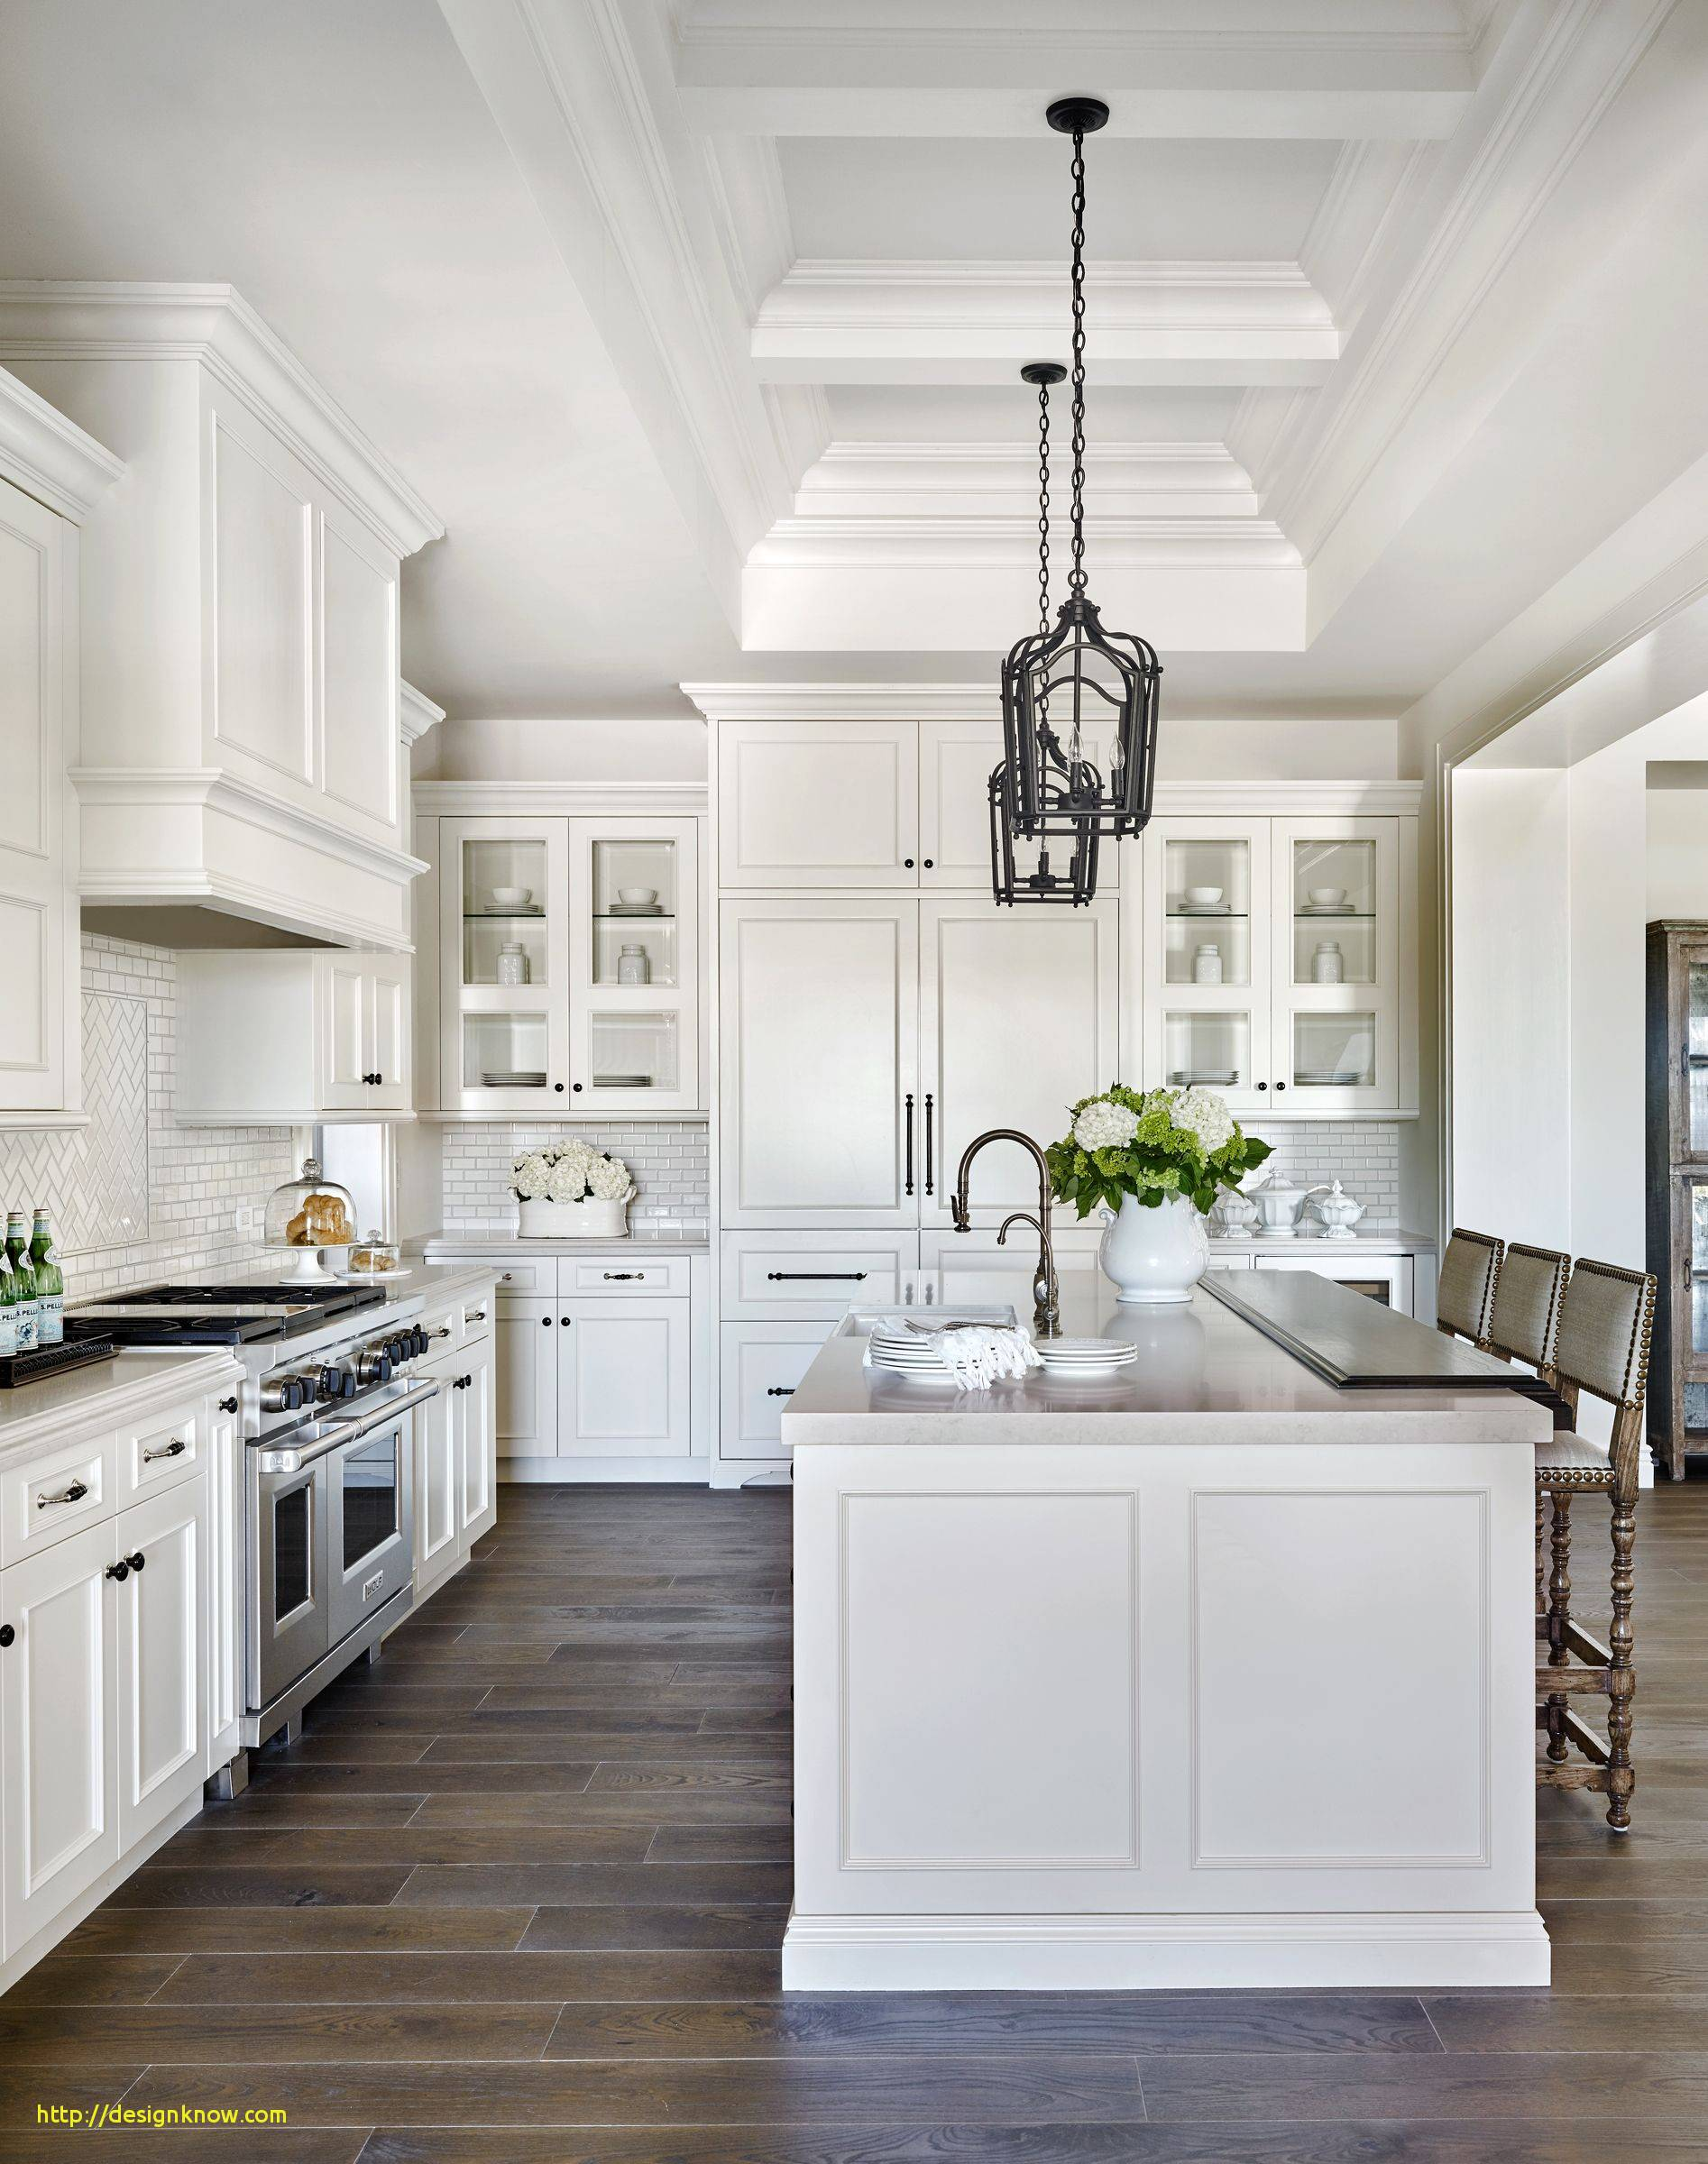 small white kitchens best of i want this exact layout of island opposite stove whisper rock of small white kitchens